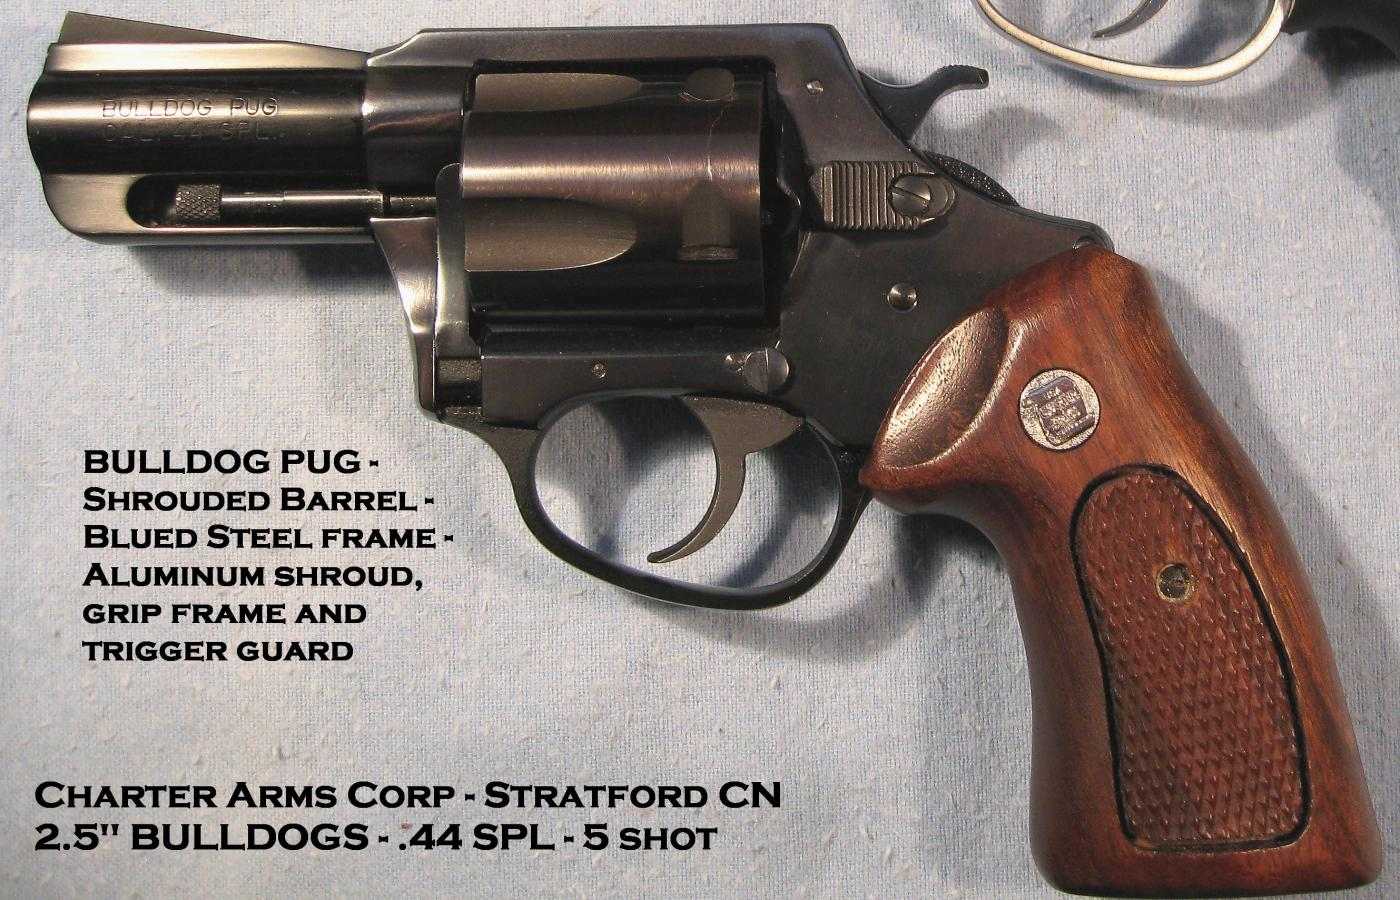 Charter  44 bulldog, Stamford, Conn | The Firearms Forum